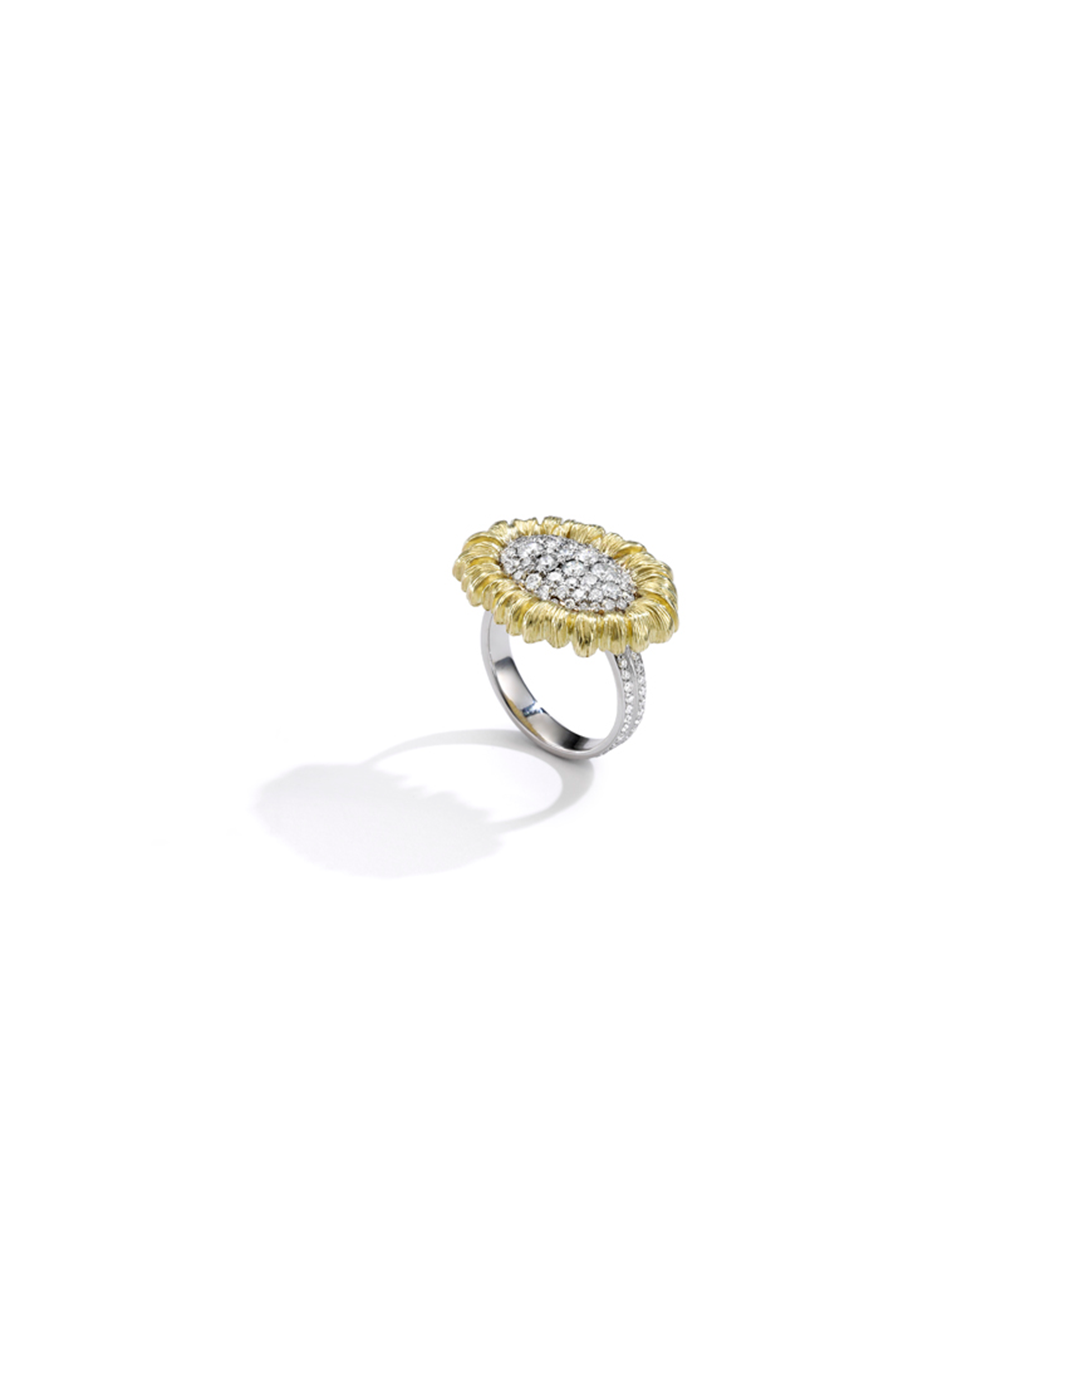 mish_products_rings_Nigella-Oval-Ring-1_resize